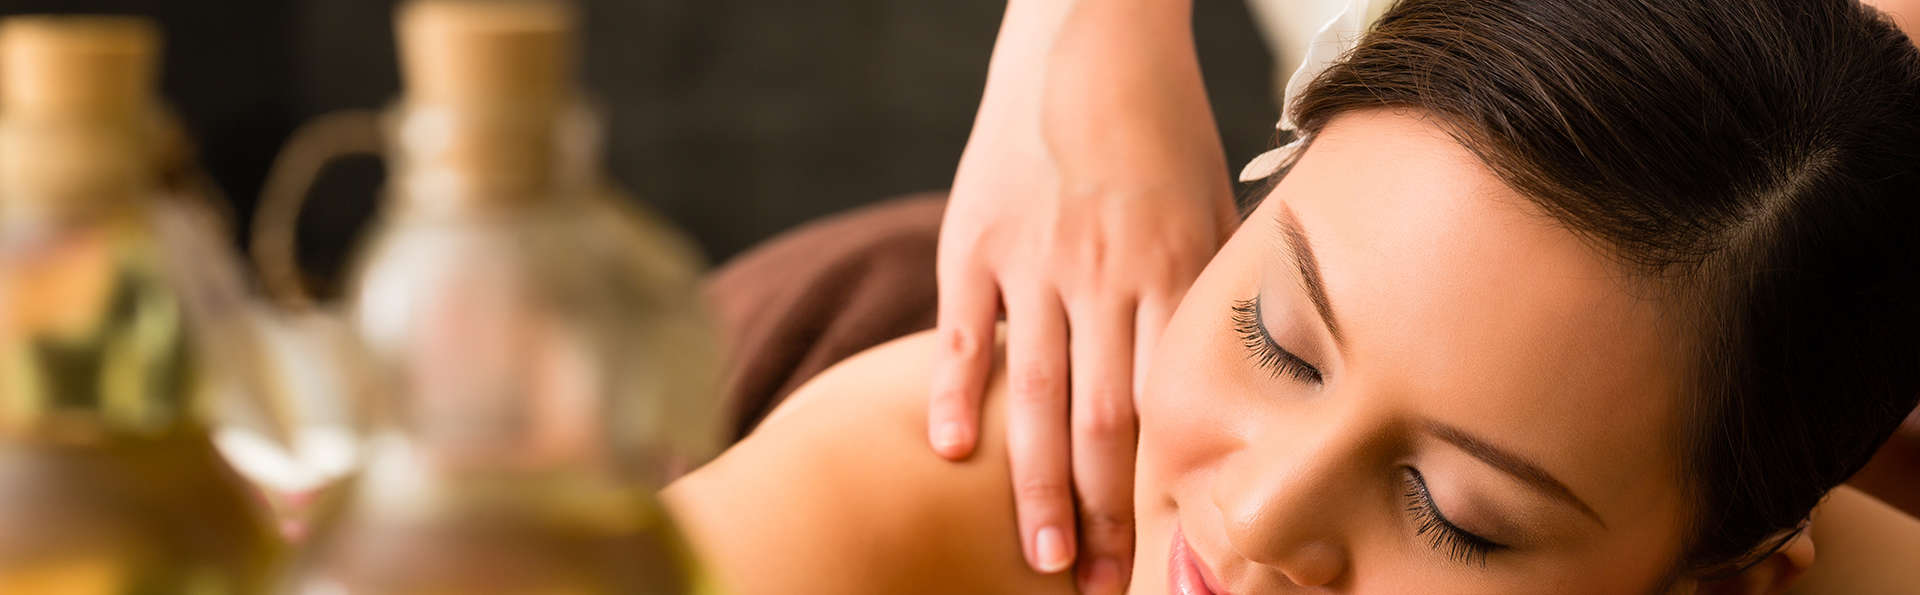 Weekend met massage en toegang tot de spa in Platja D´Aro aan de Costa Brava